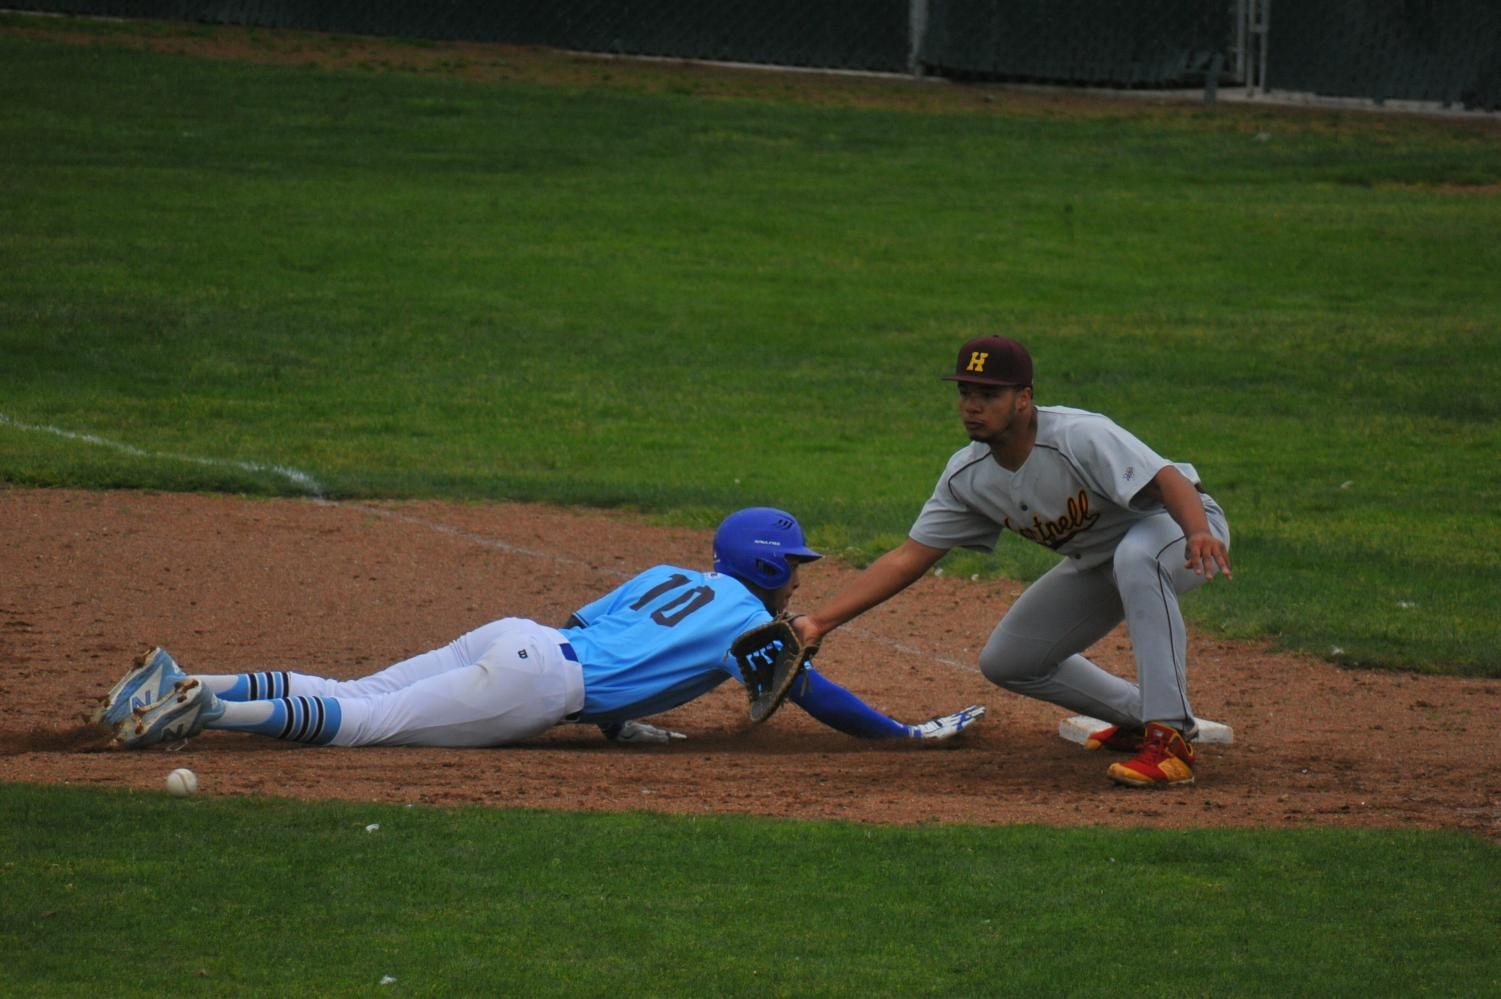 Hartnell College first baseman Chris Wright fields a pickoff throw from his pitcher as Comet outfielder Mychael Jamison dives safely back to first base.